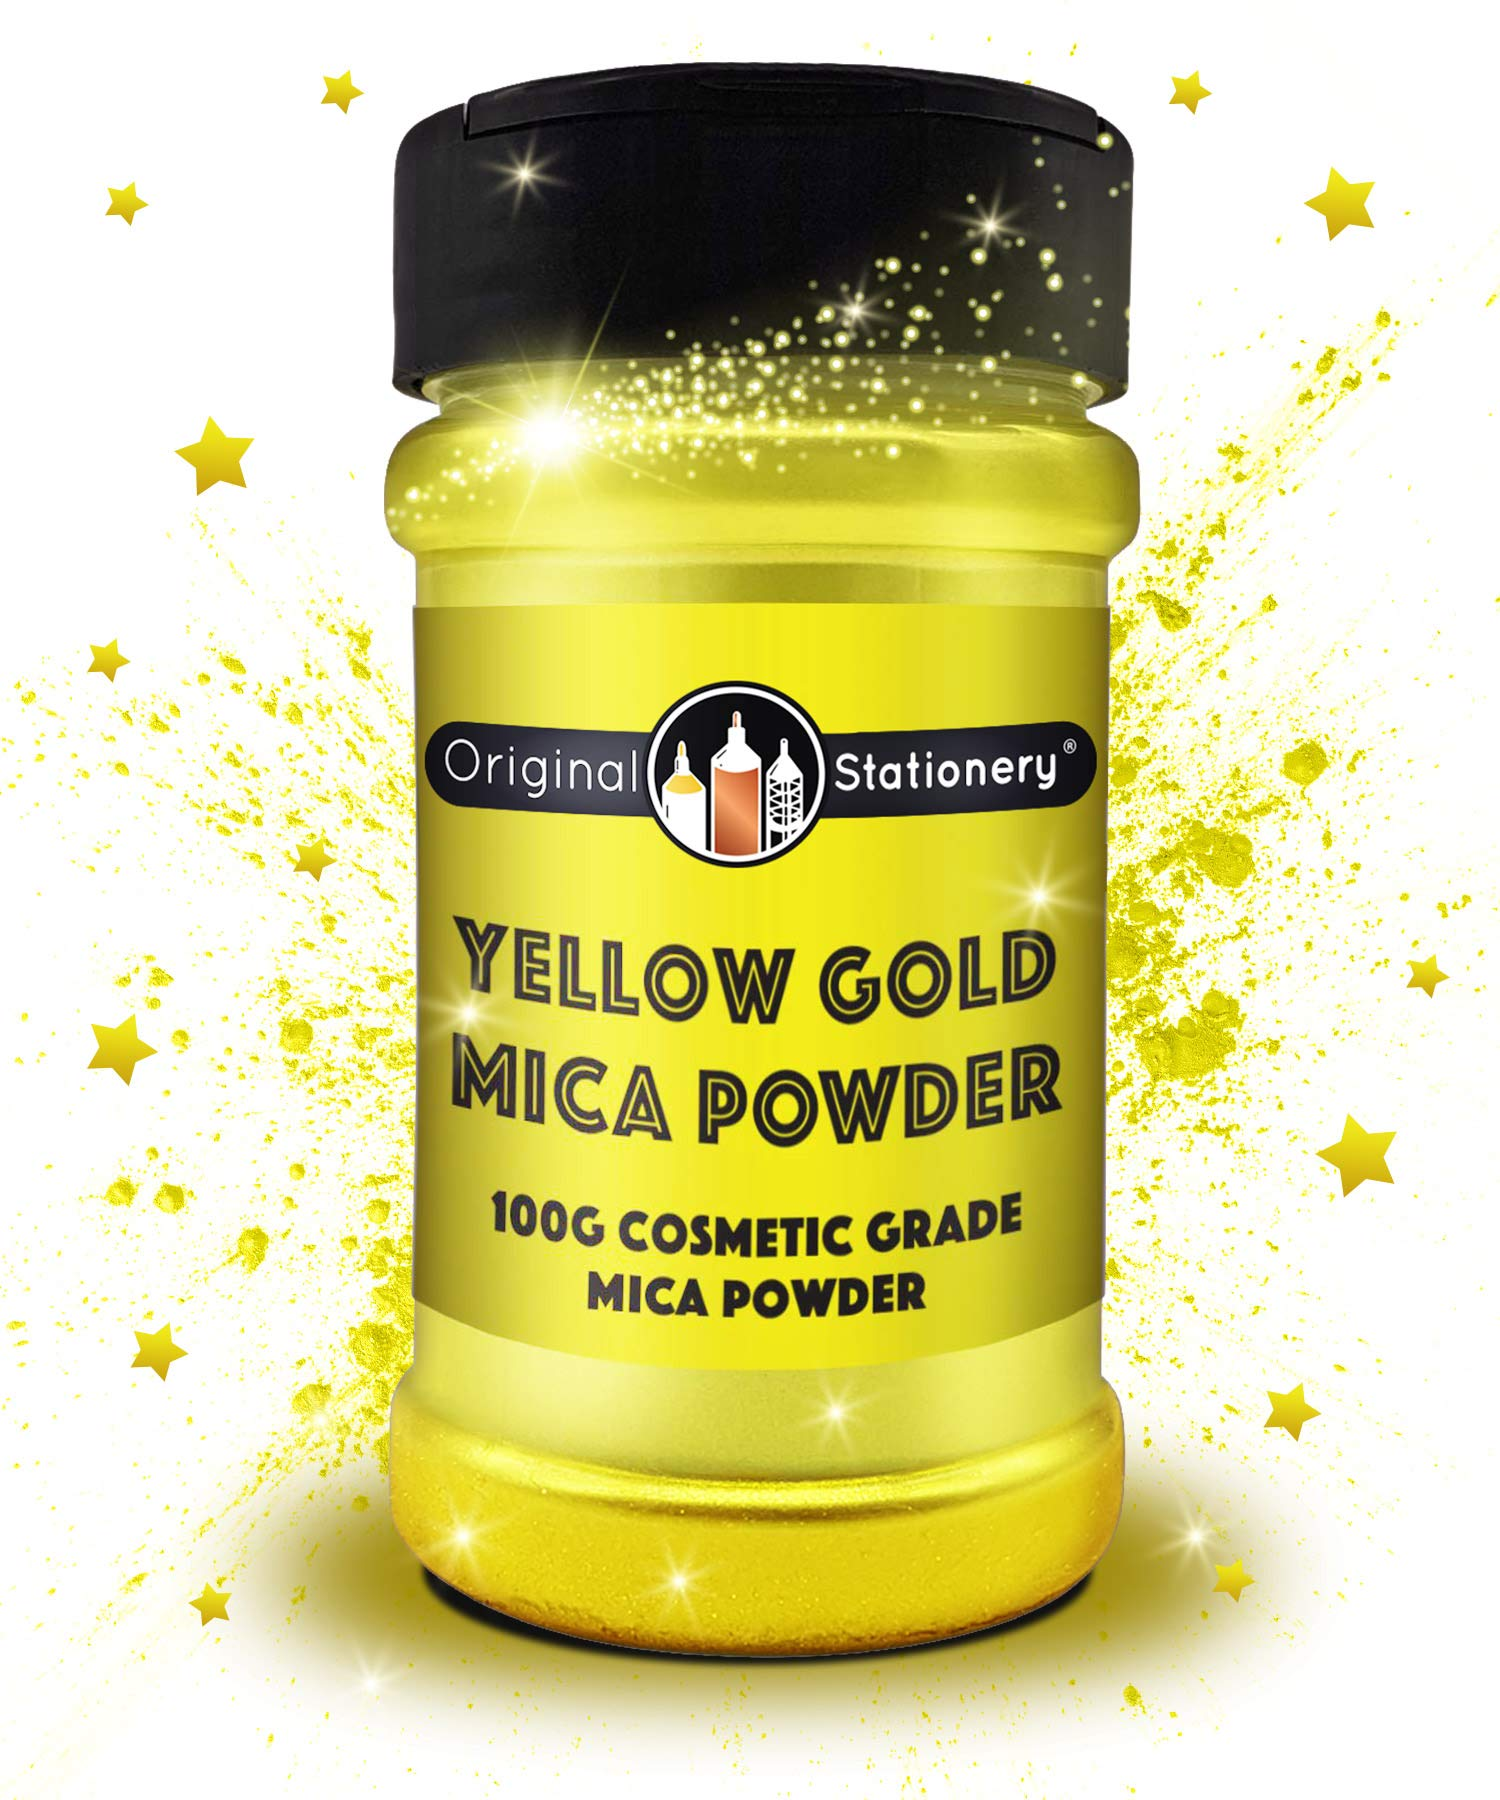 Mica Powder - 3.5 ounces / 100 grams [HUGE x3-5 THE SIZE OF OUR COMPETITORS] Cosmetic Grade – True Colors – Beautiful Mica for Slime, Soap Making, Bath Bombs,Make-up, Nails, Decor (Yellow Gold)